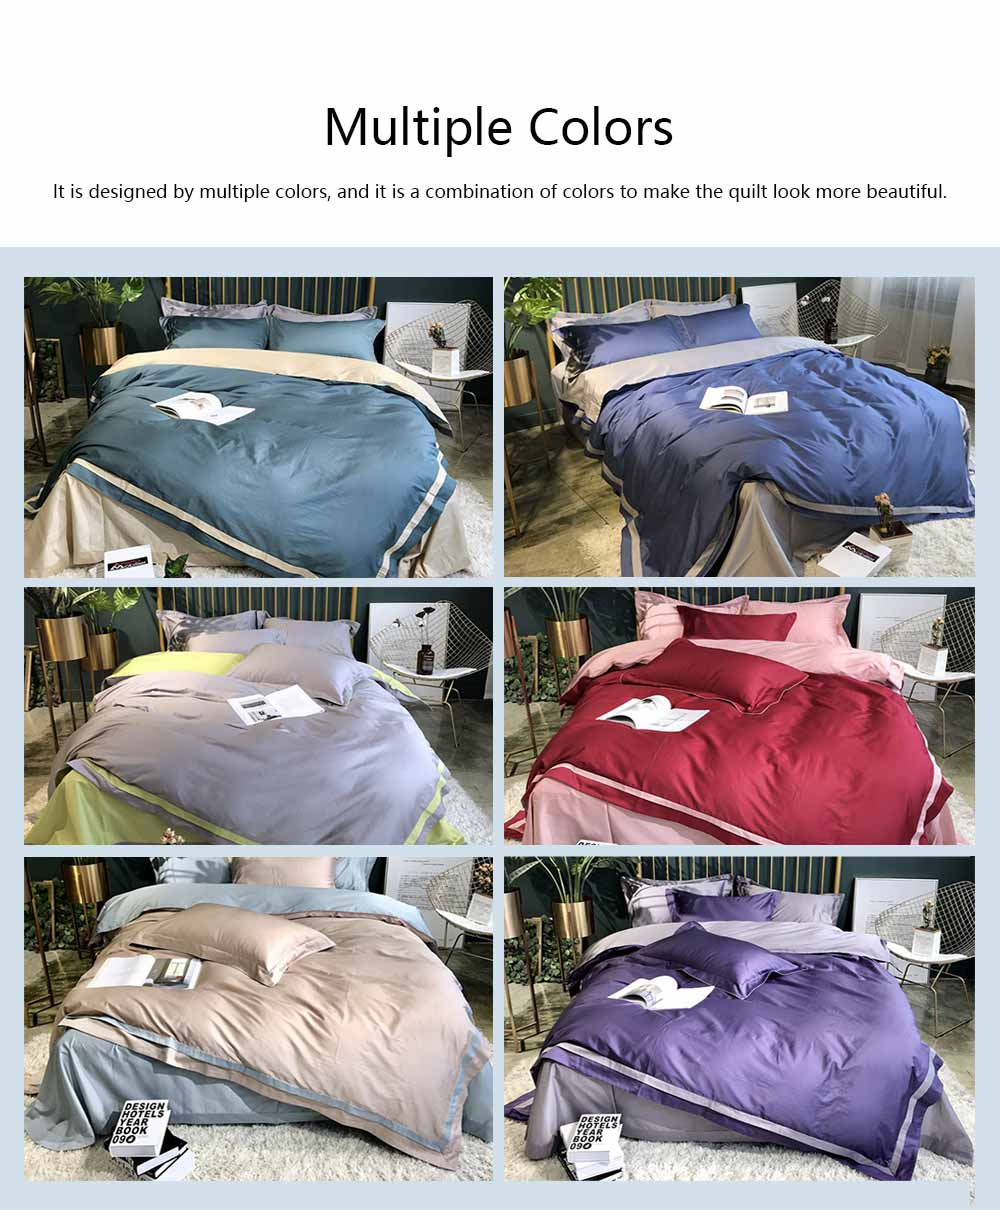 Four-piece Bedding Set Cotton Material, Flat-sheet Pillow Soft Bed Sheet Fitted-sheet Breathable Bedding Bag Comfortable Quilt 2